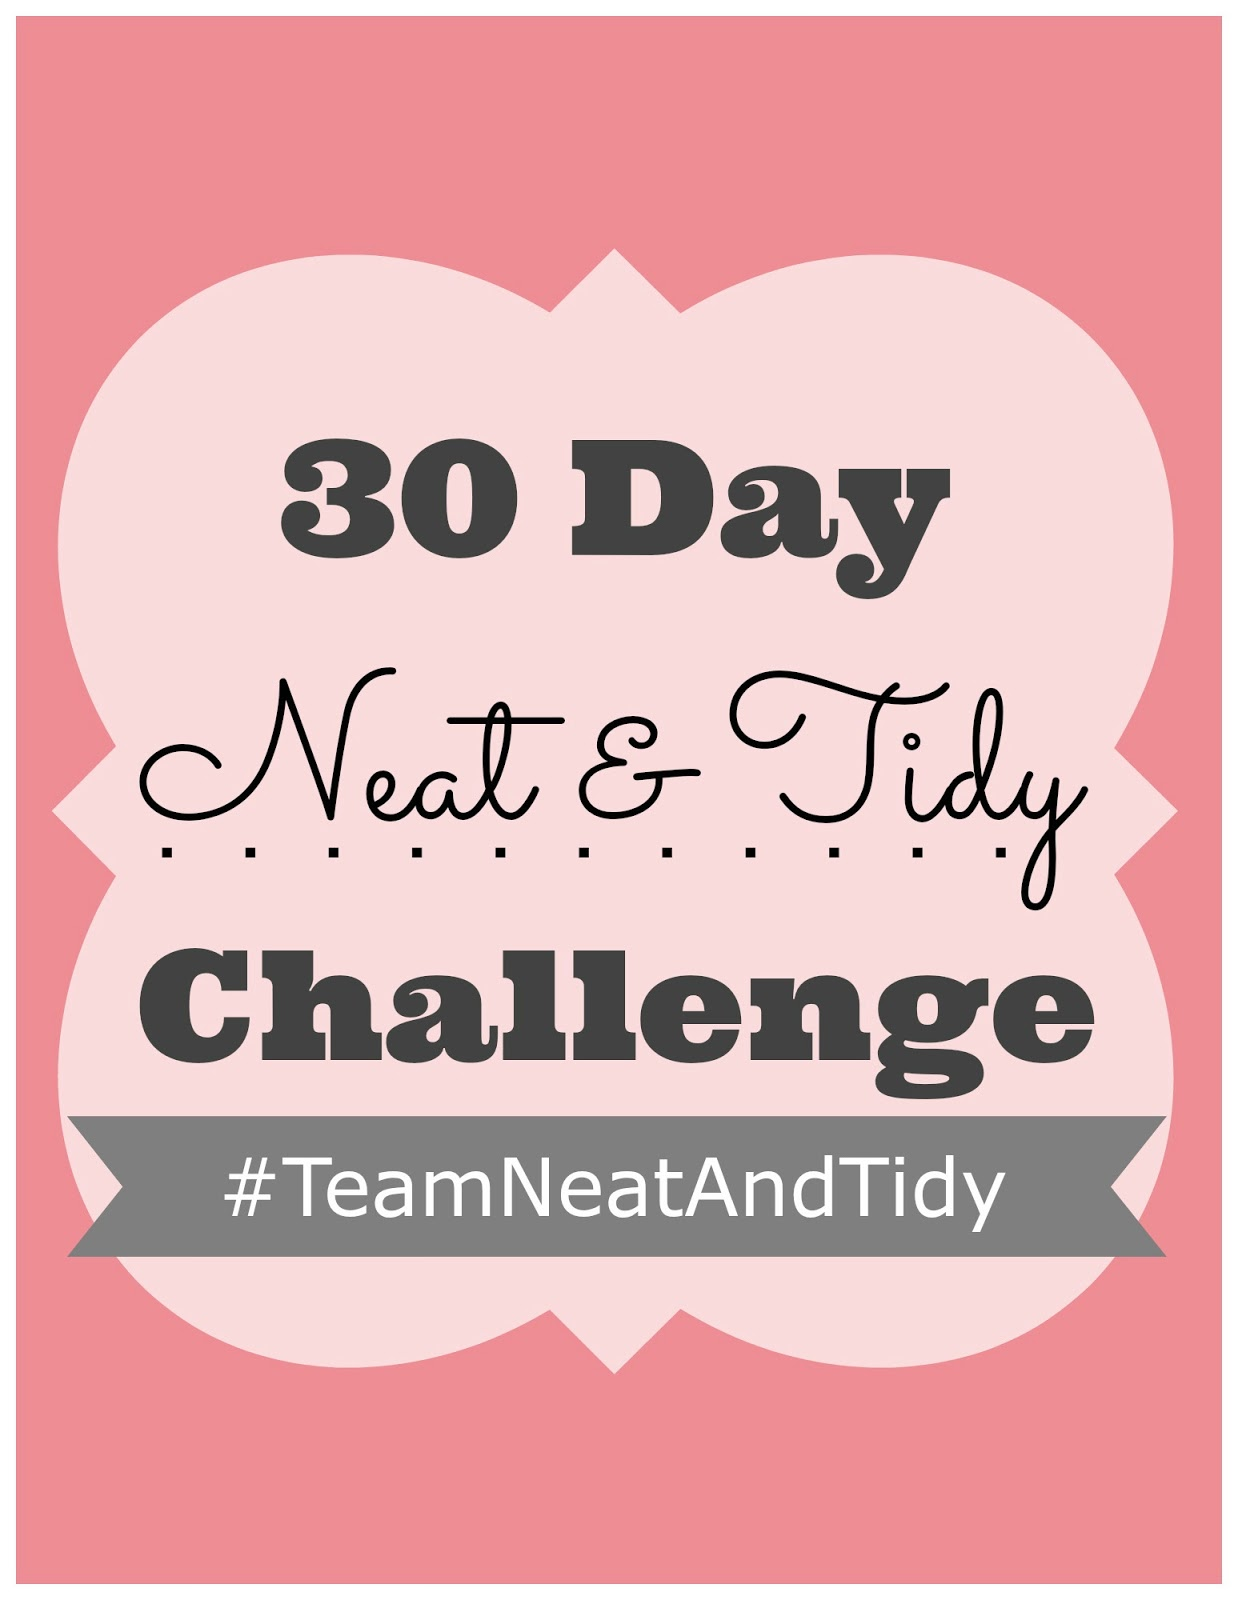 30 Day Neat & Tidy Challenge